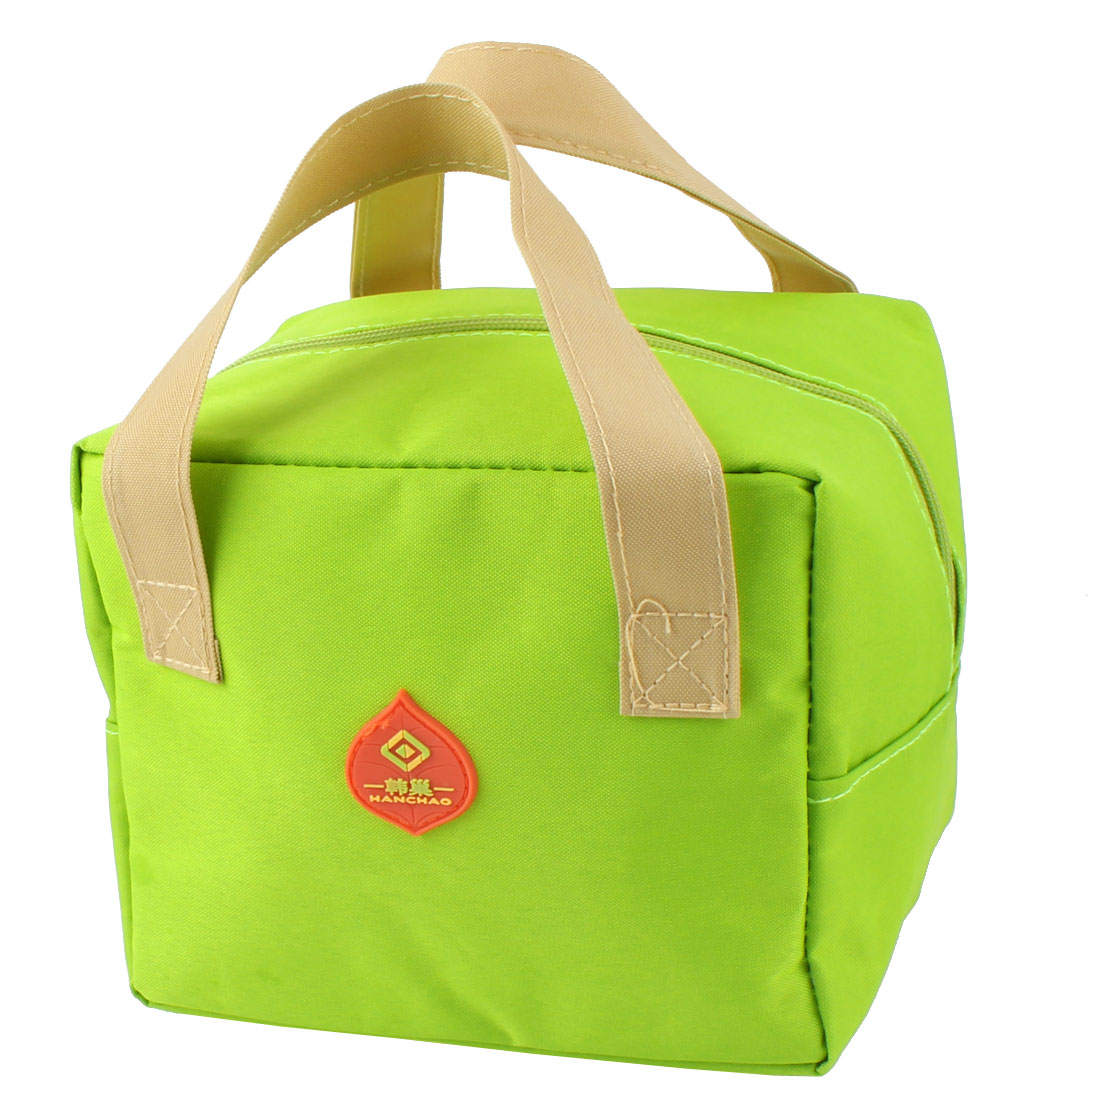 Outdoor Portable Rectangle Thermal Cooler Insulated Lunch Bag Tote Picnic Container Pouch Green